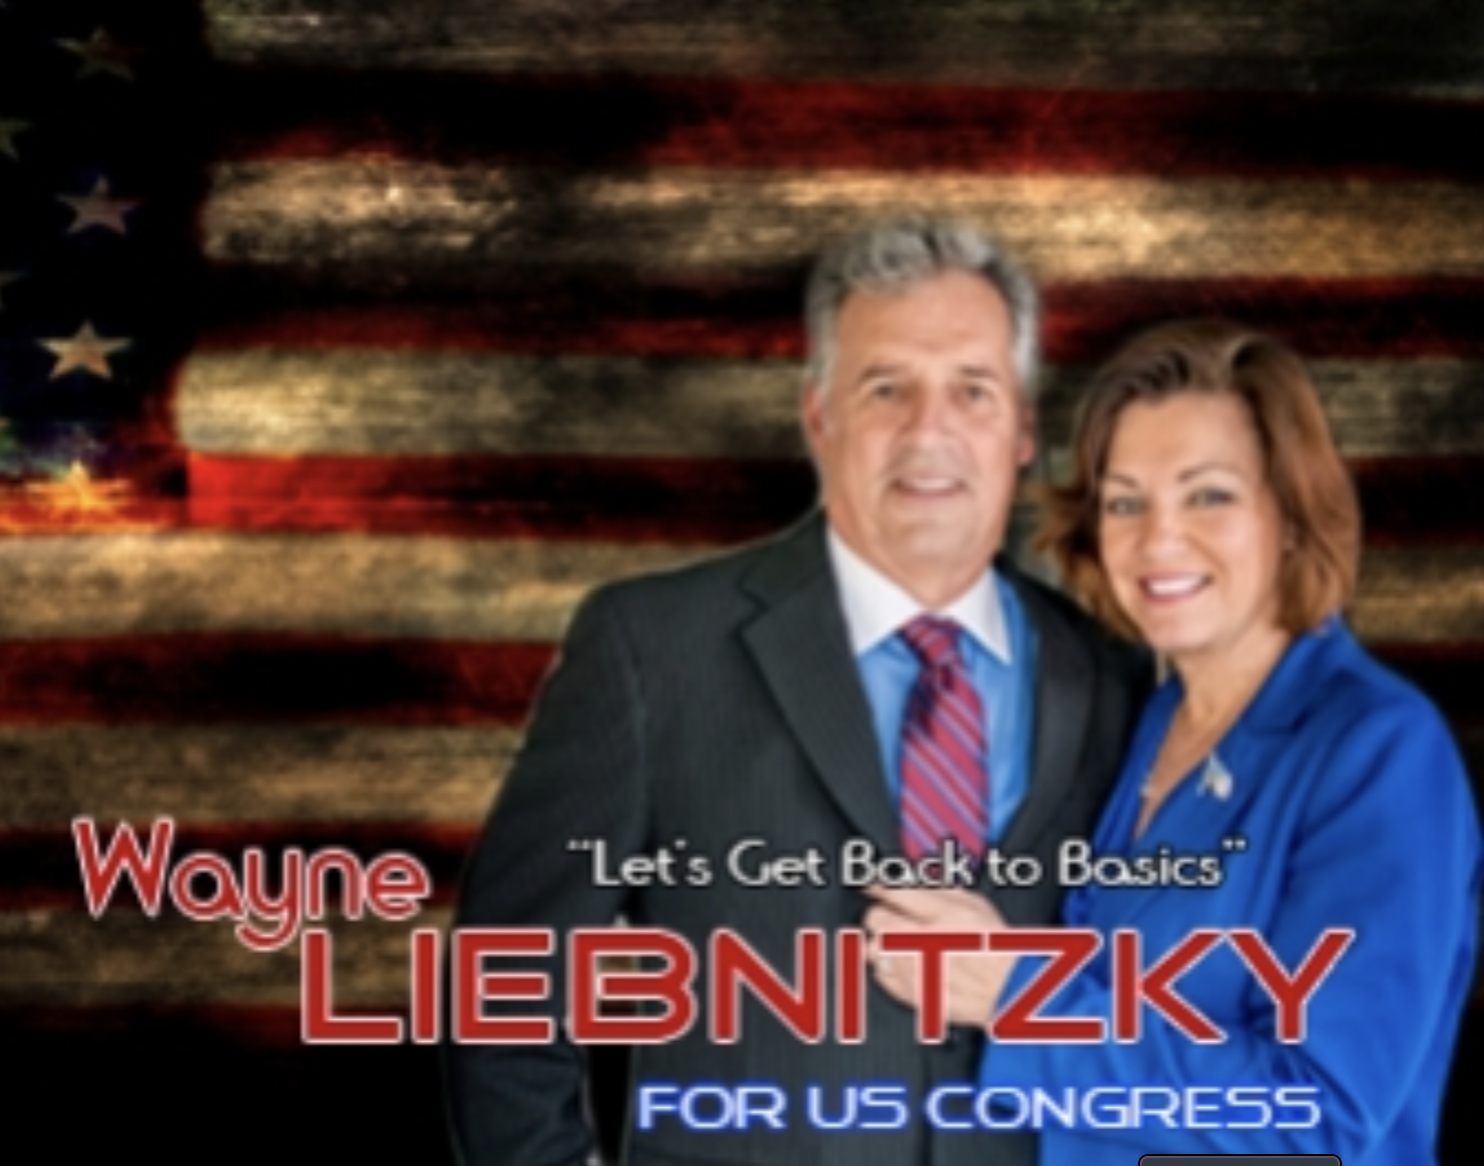 U.S. Navy Veteran Challenges Soto in FL-09 - Wayne Liebnitzky is a professional problem solver who will bring American exceptionalism back to Washington DC.